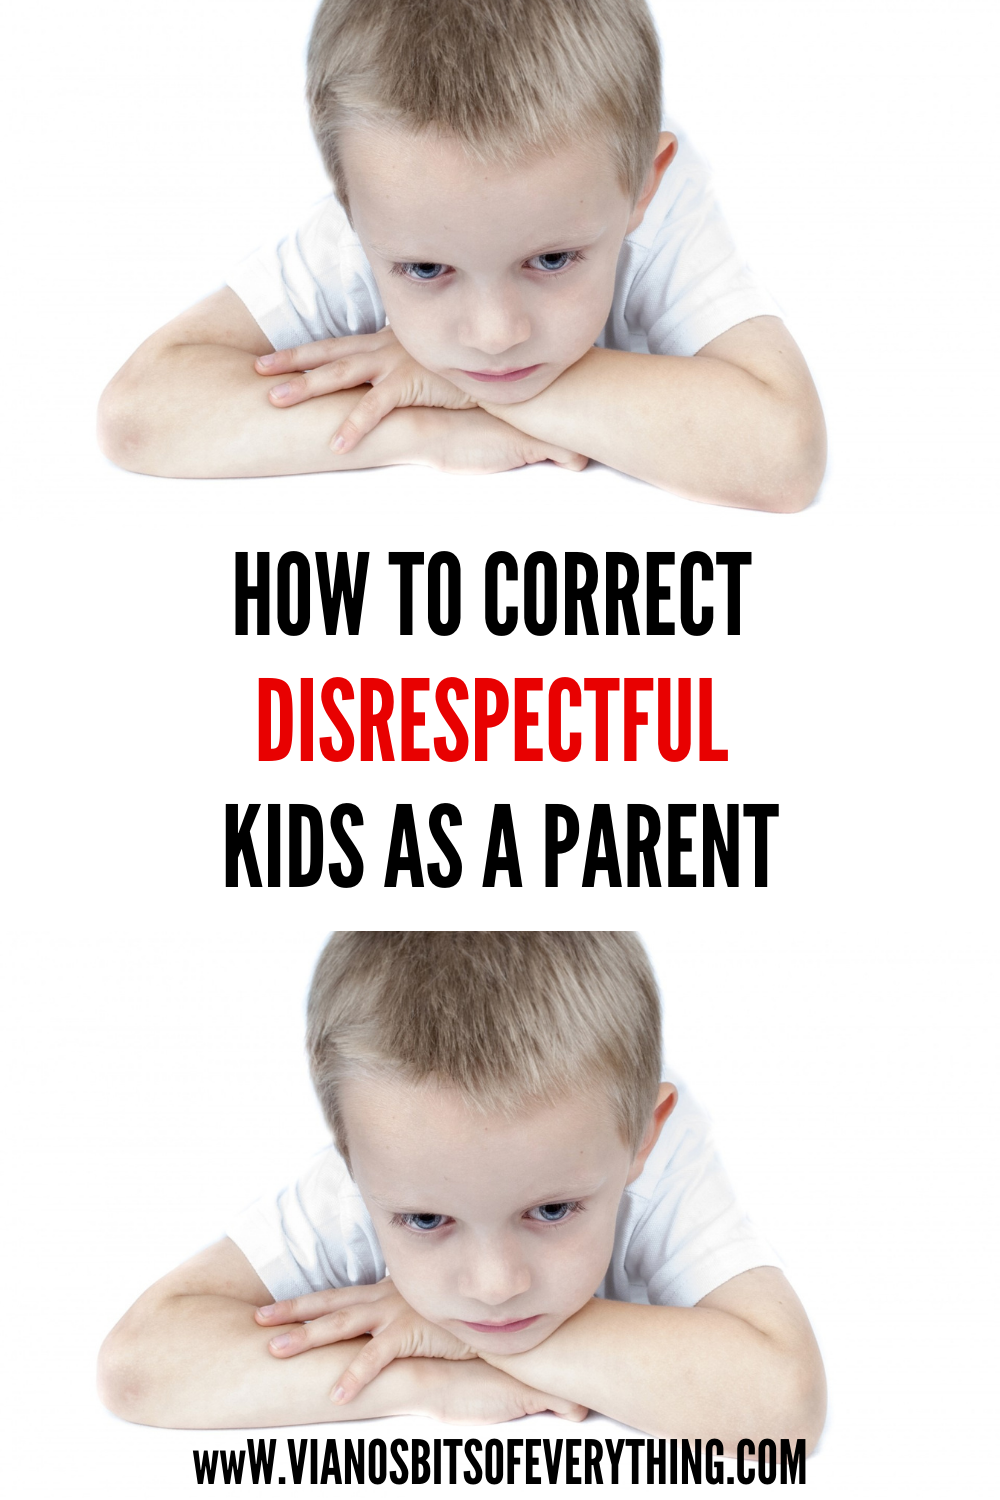 How To Correct Disrespectful Kids As A Parent